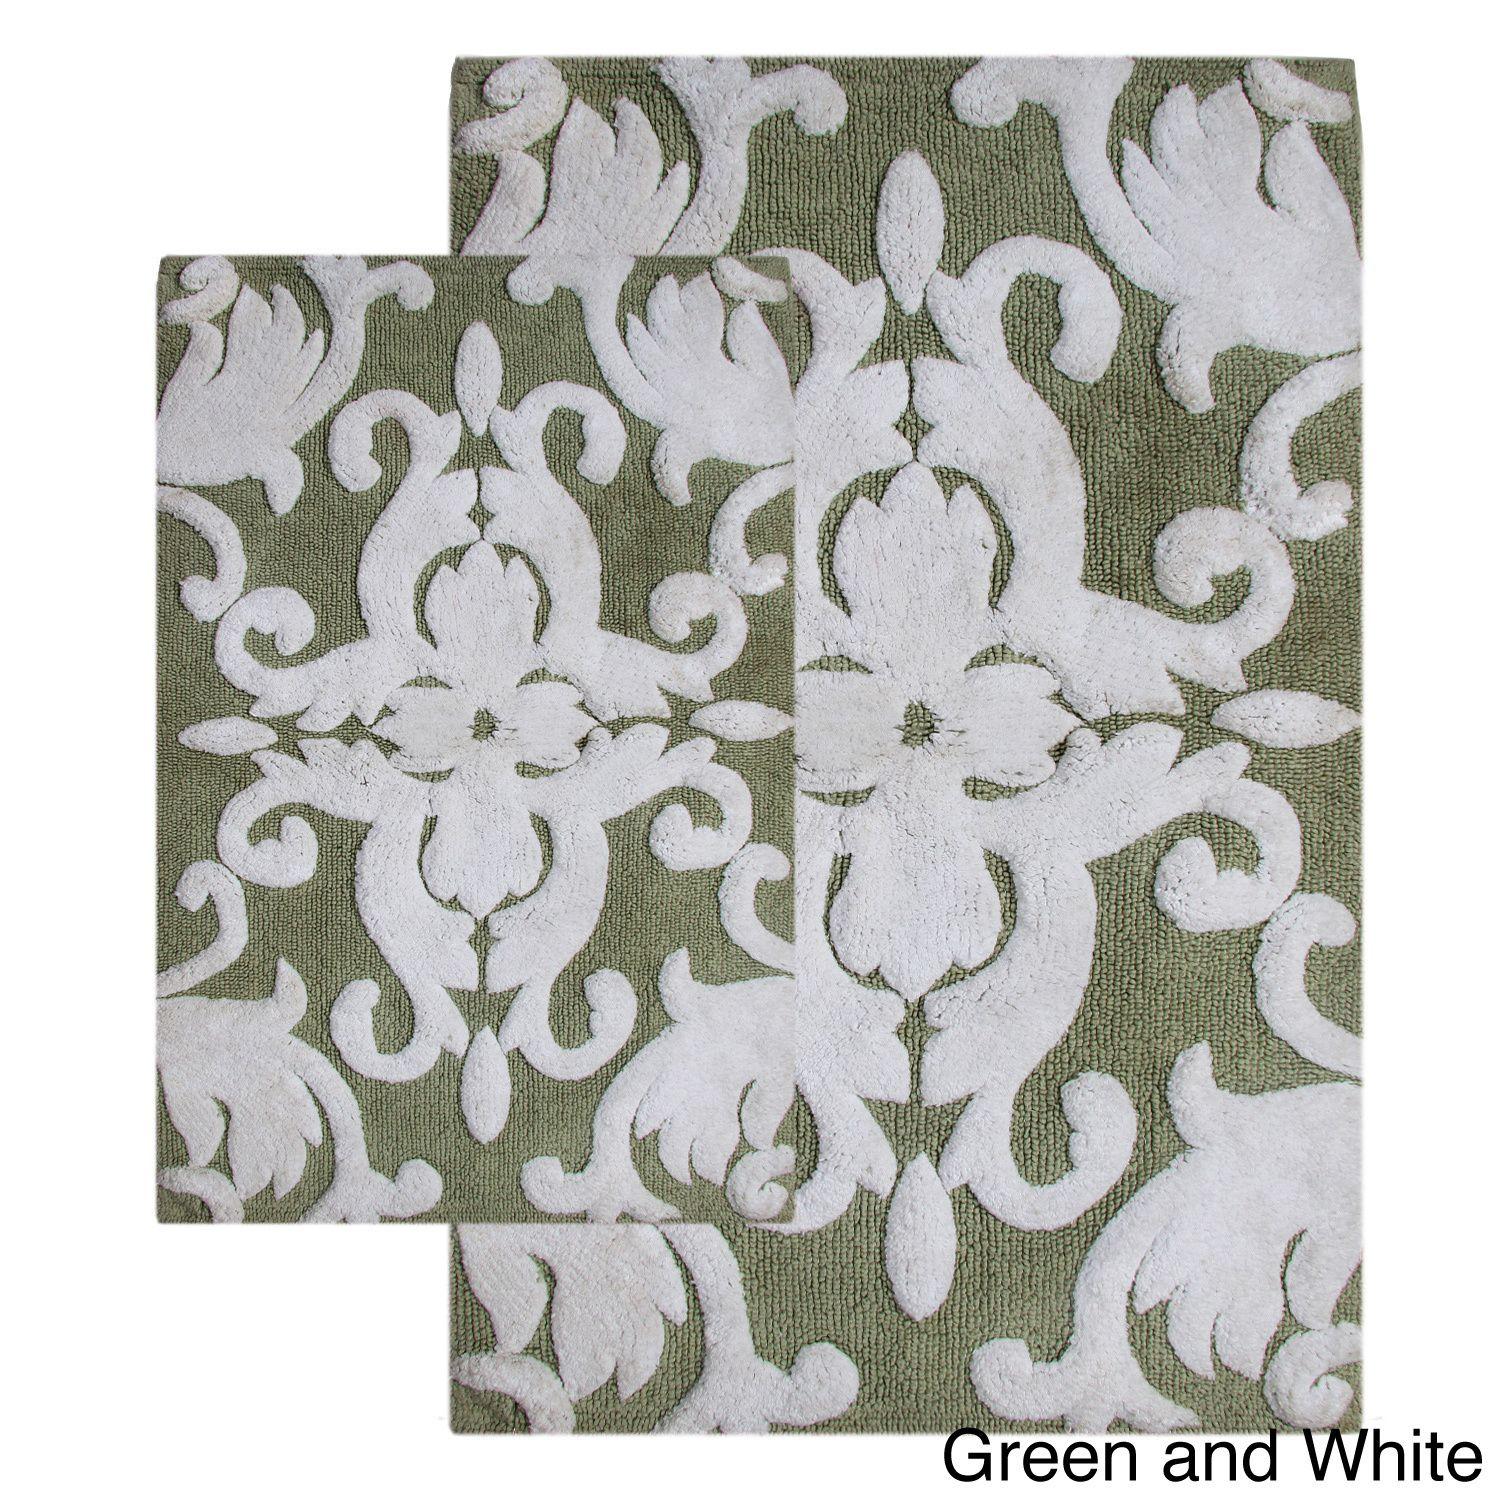 This two-piece bath rug set with a beautiful scrolled design enriches any space with distinctive style. Bathroom decor takes an elegant tone, while plush fabric cushions feet in pure comfort with a water-absorbent construction.